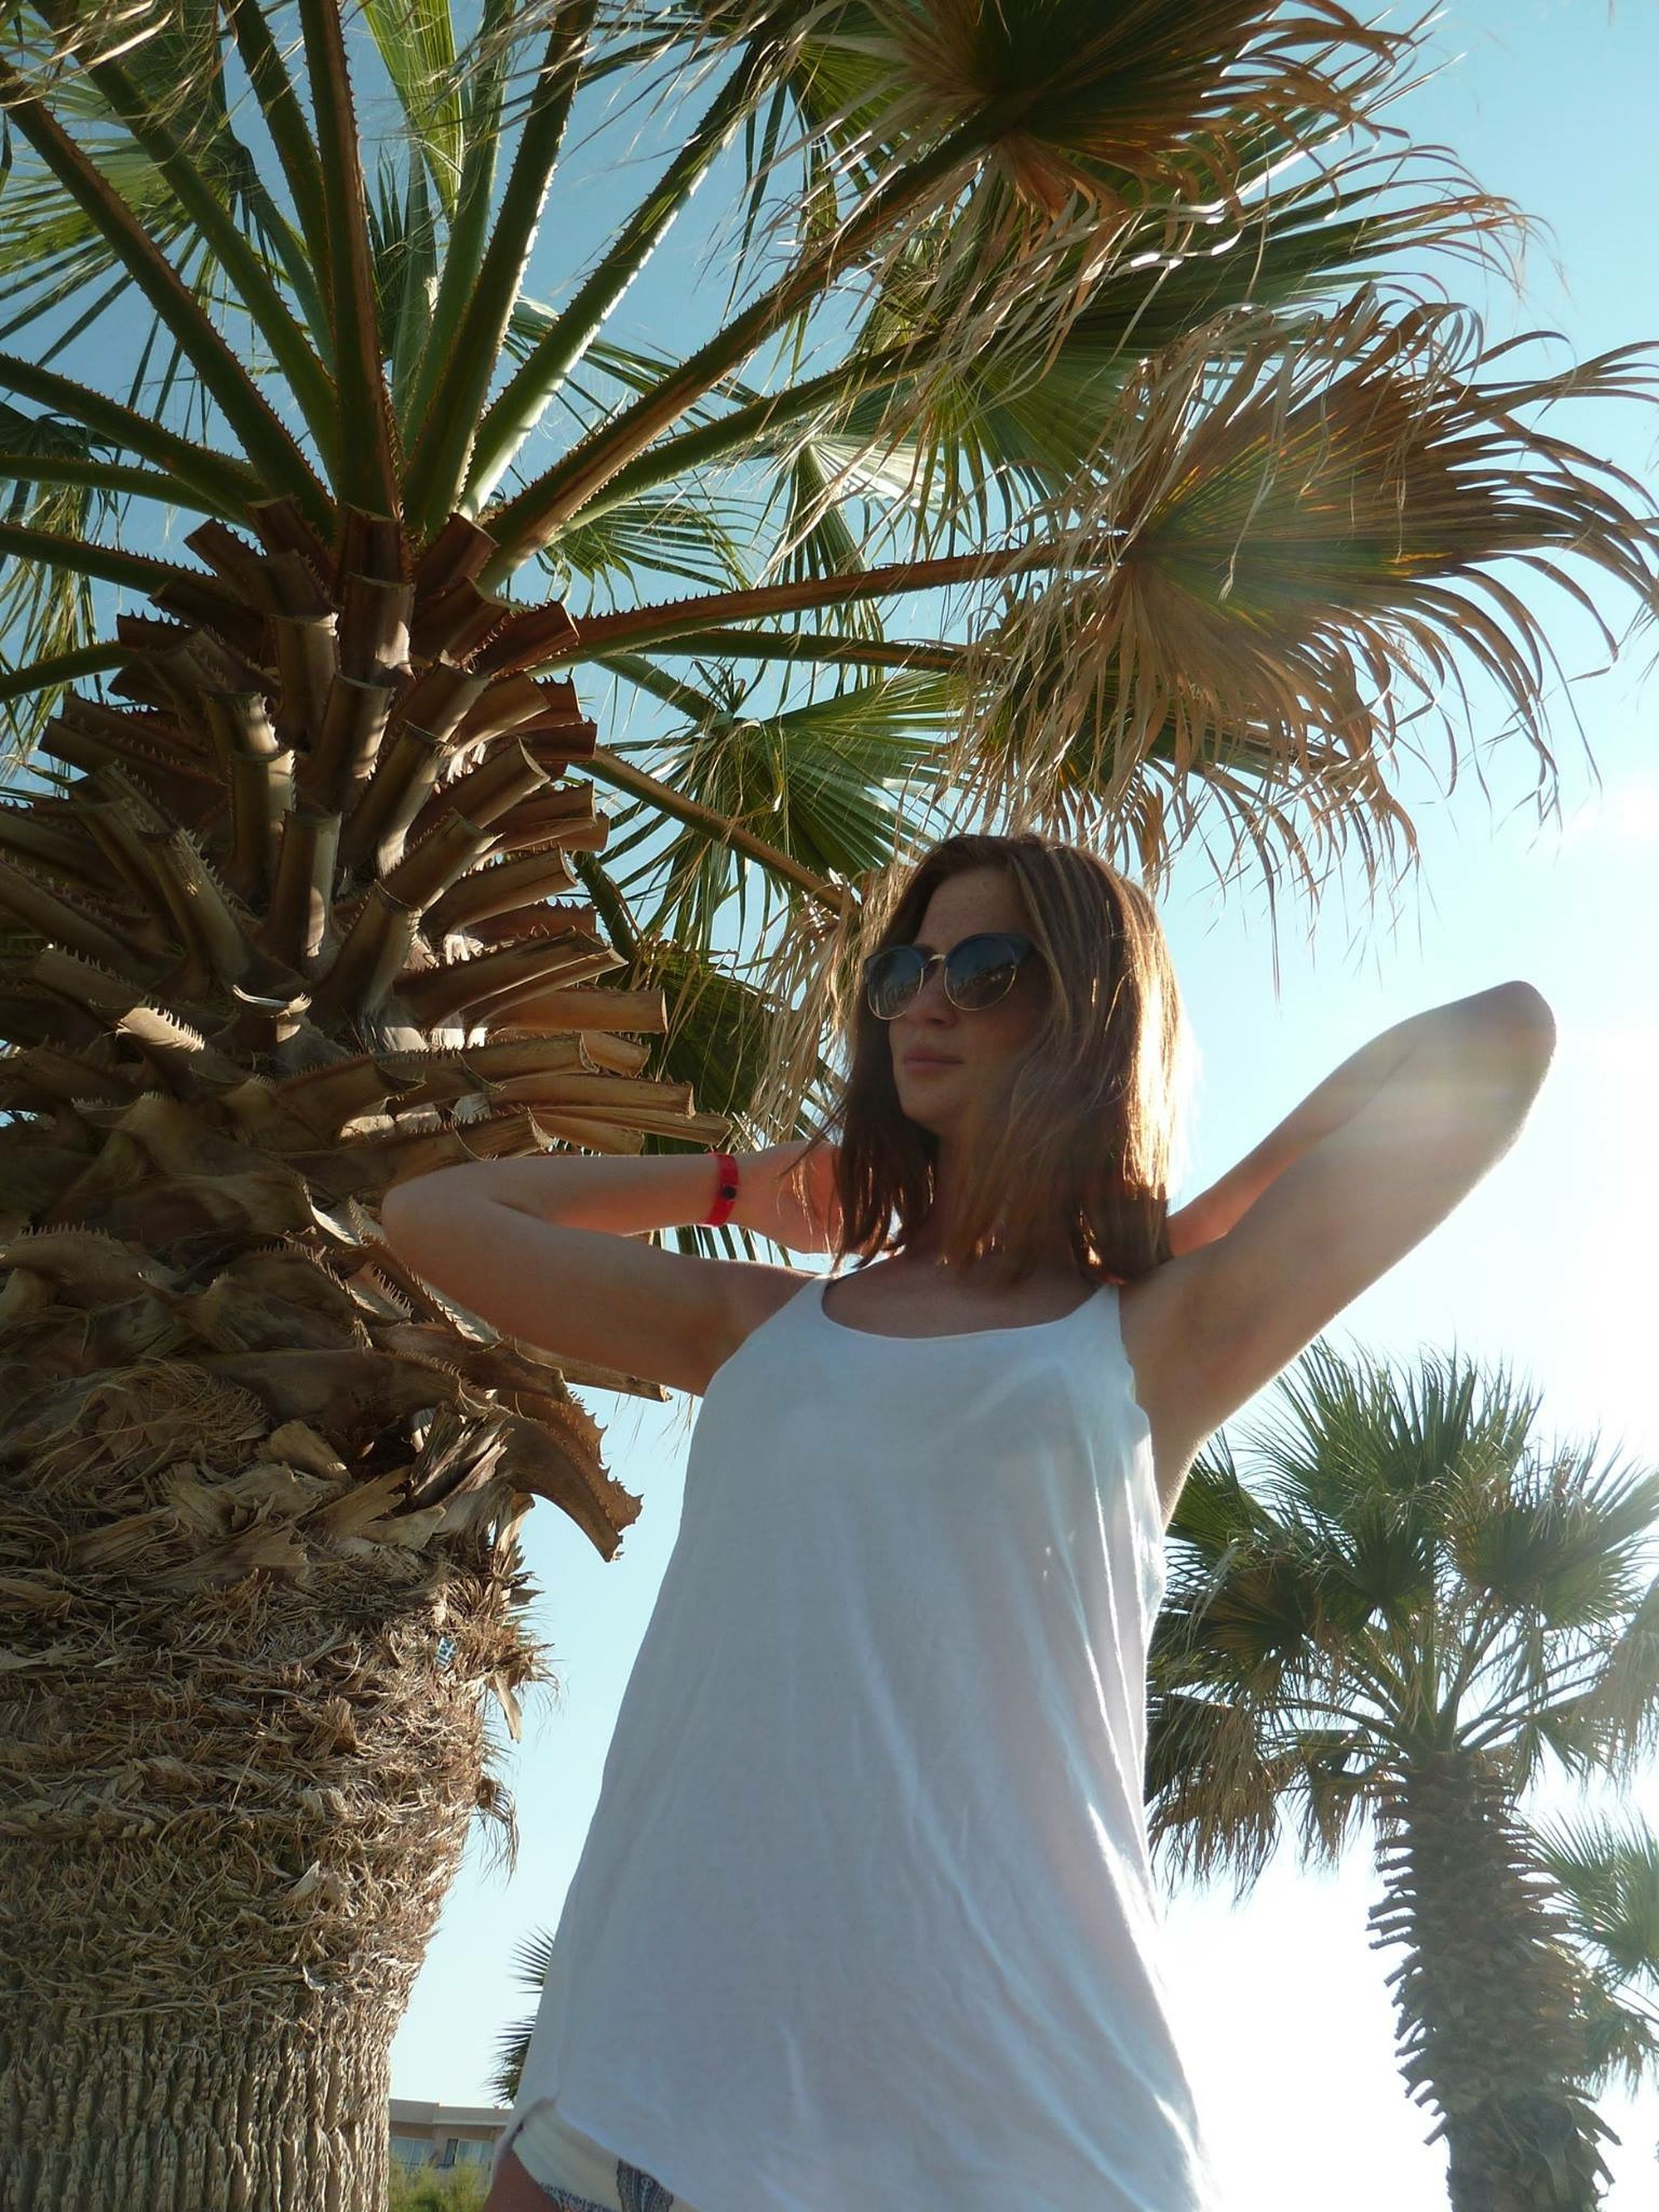 tree, lifestyles, leisure activity, palm tree, young adult, young women, person, low angle view, casual clothing, clear sky, looking at camera, front view, portrait, standing, smiling, sky, long hair, outdoors